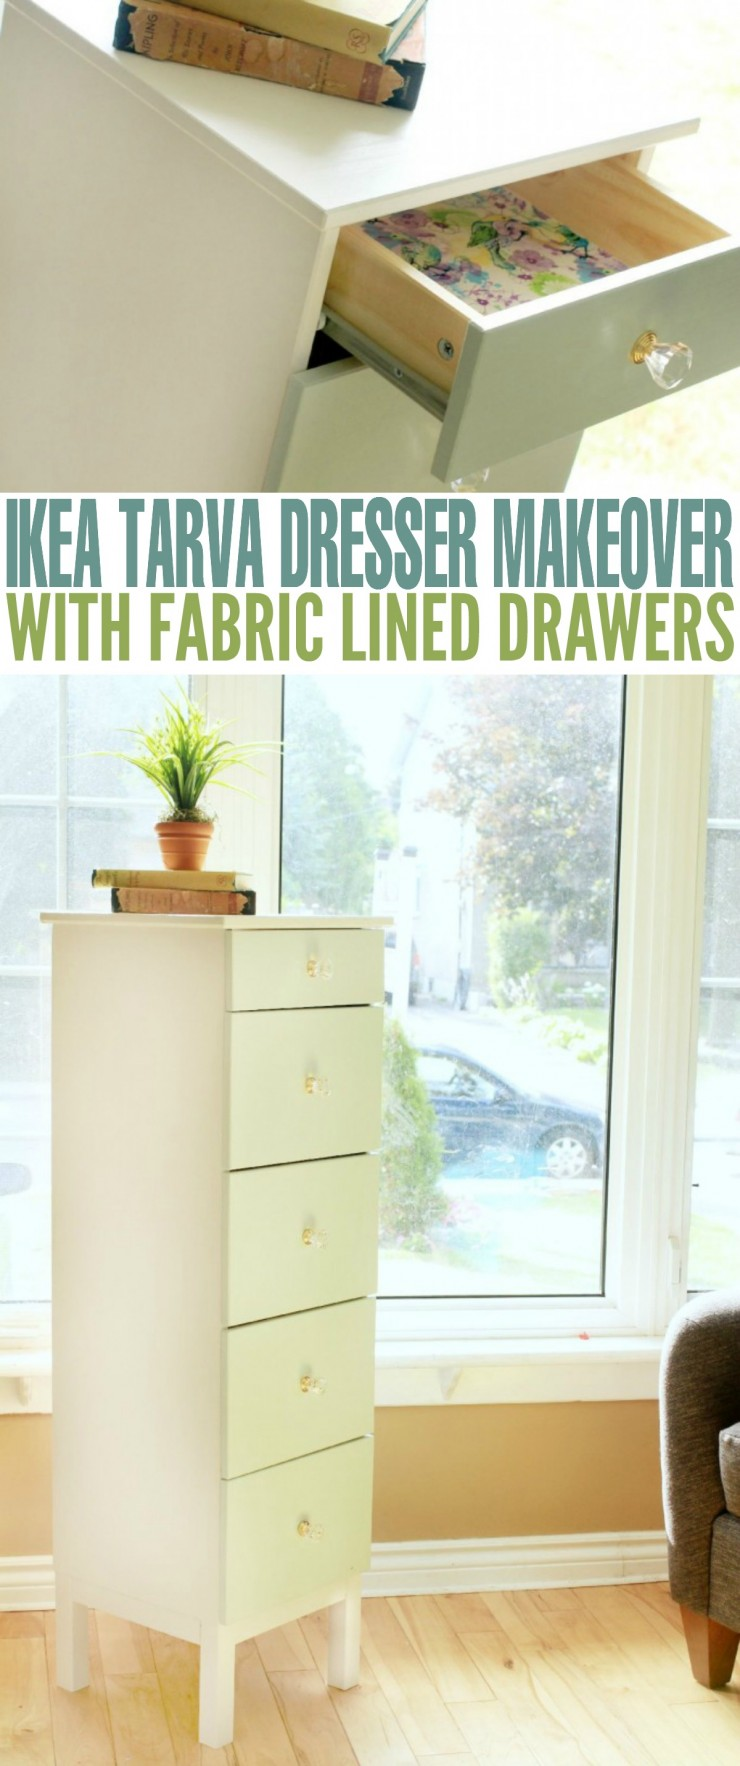 This Ikea Tarva Dresser Makeover with Fabric Lined Drawers is a fairly easy DIY furniture makeover project that results in a gorgeous one of a kind piece!